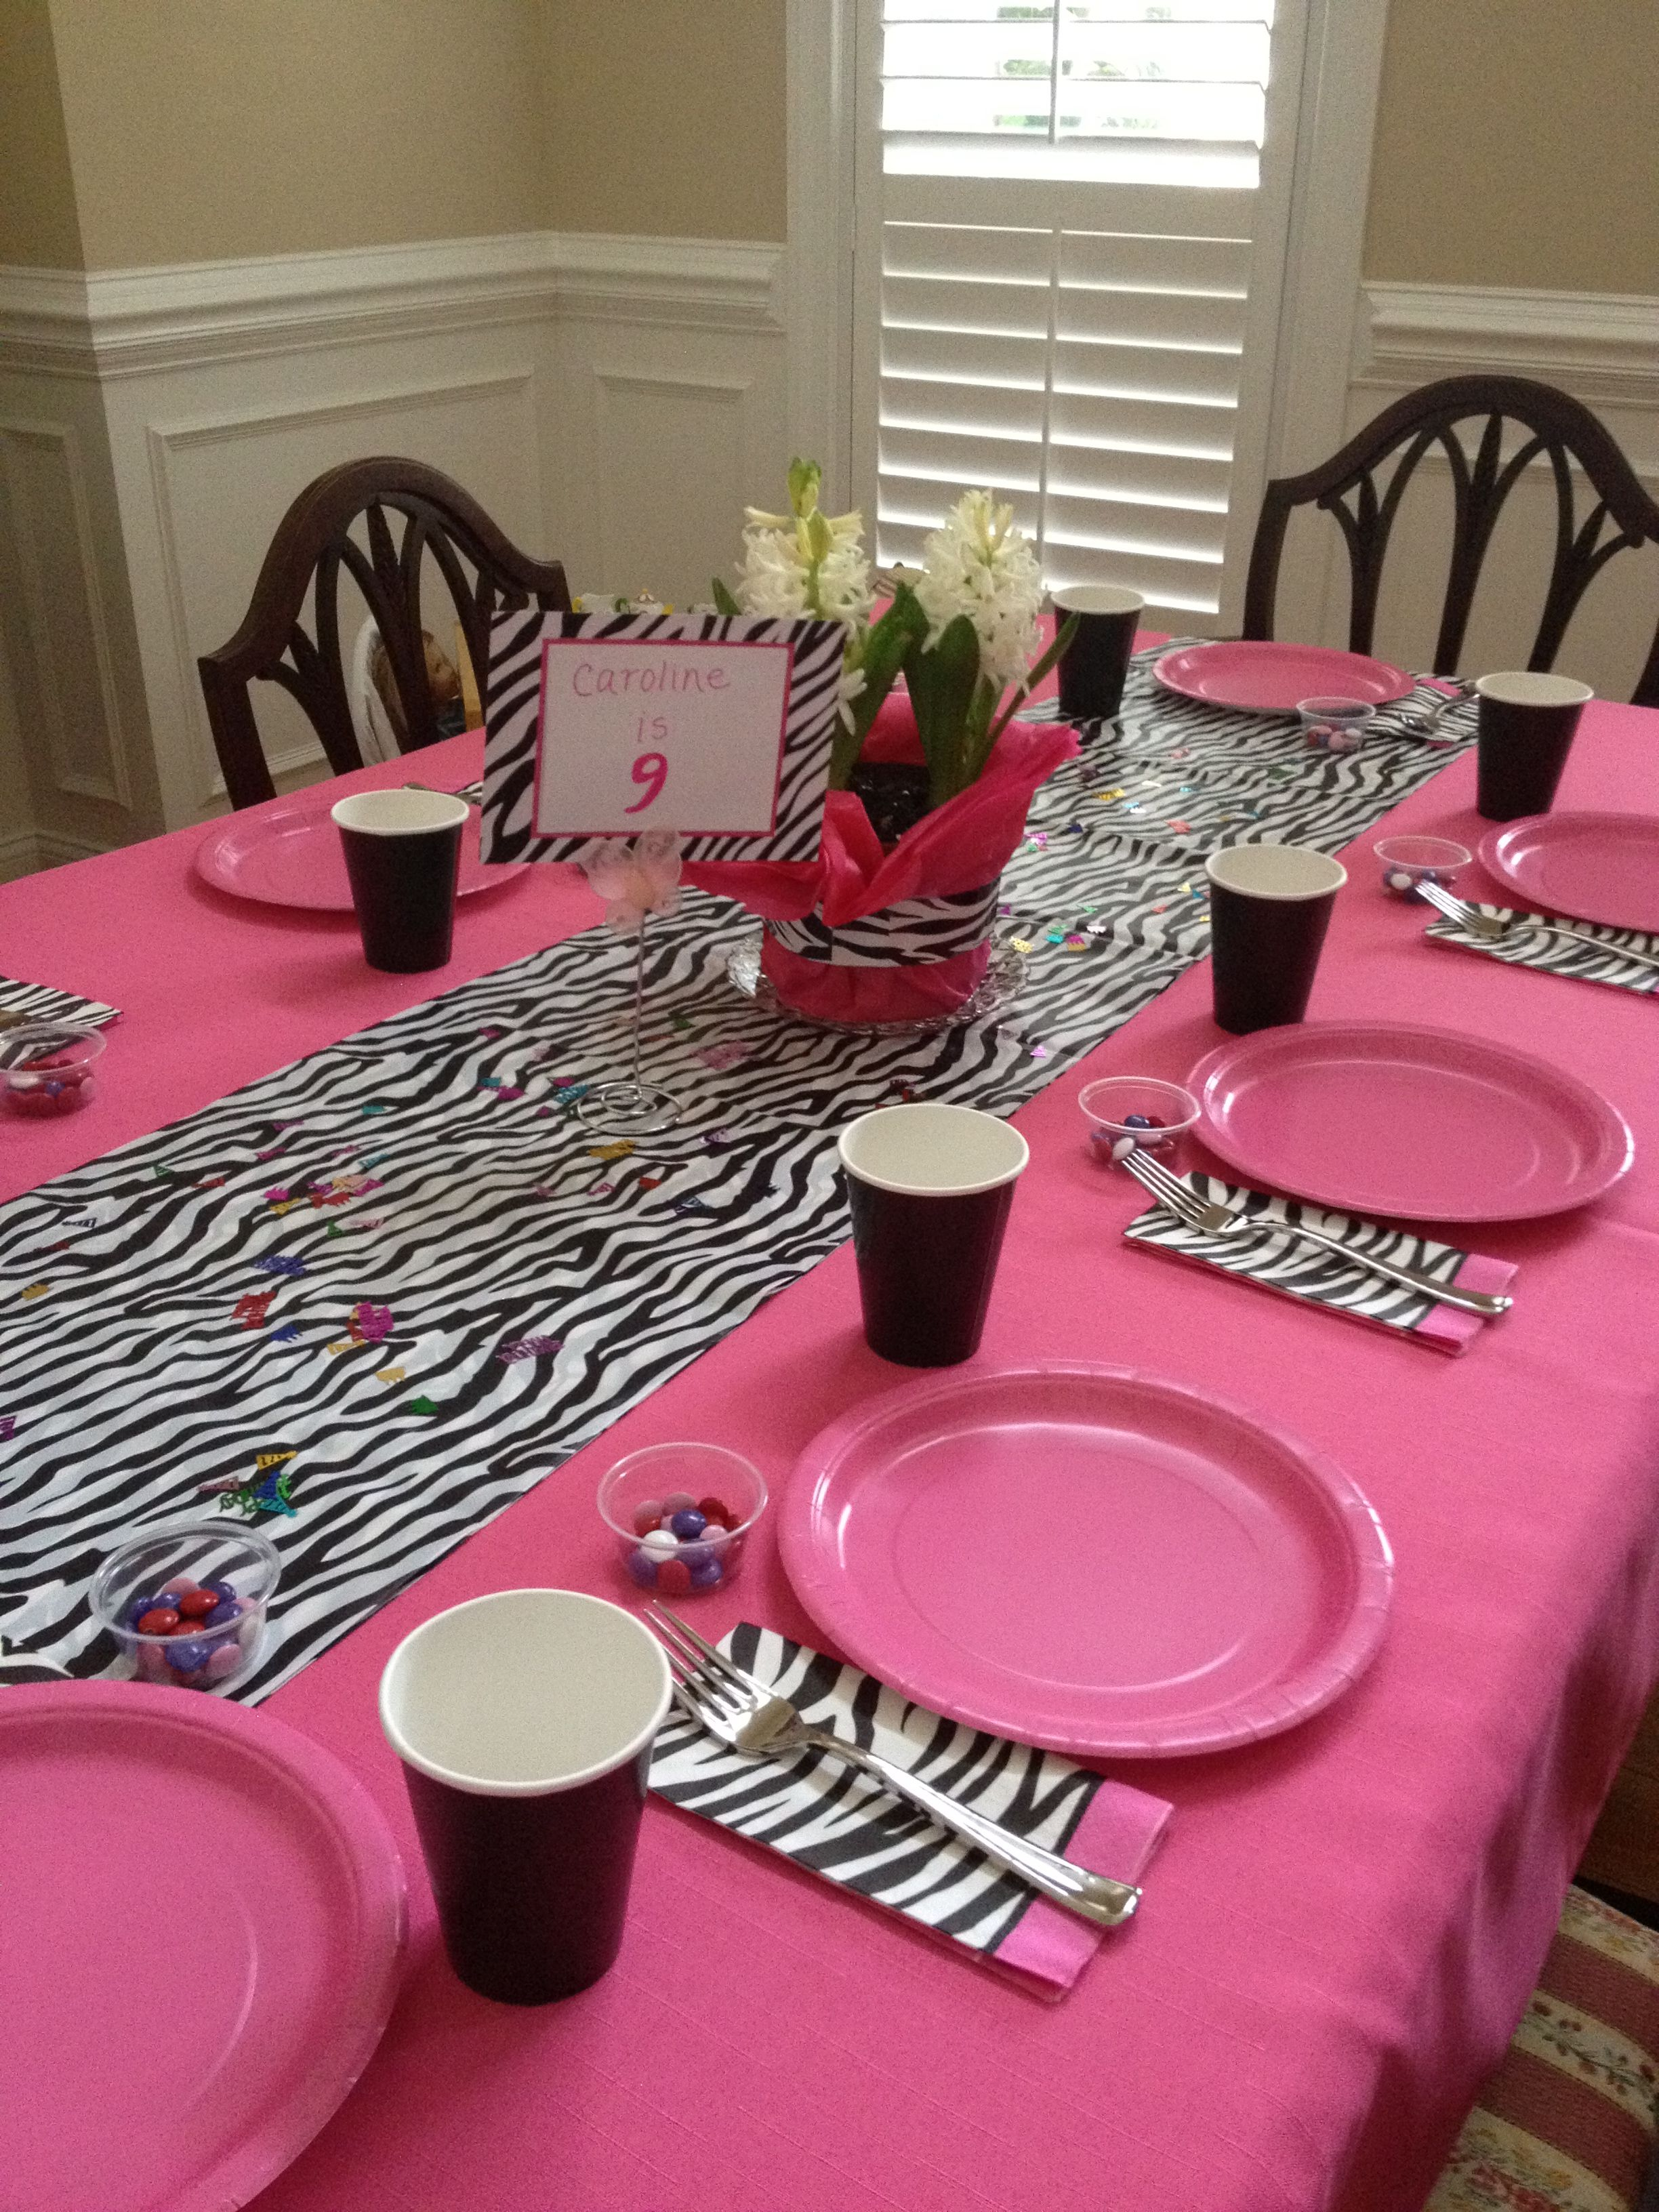 Set Table Simple Using A Plastic Zebra Tablecloth Folded In Half